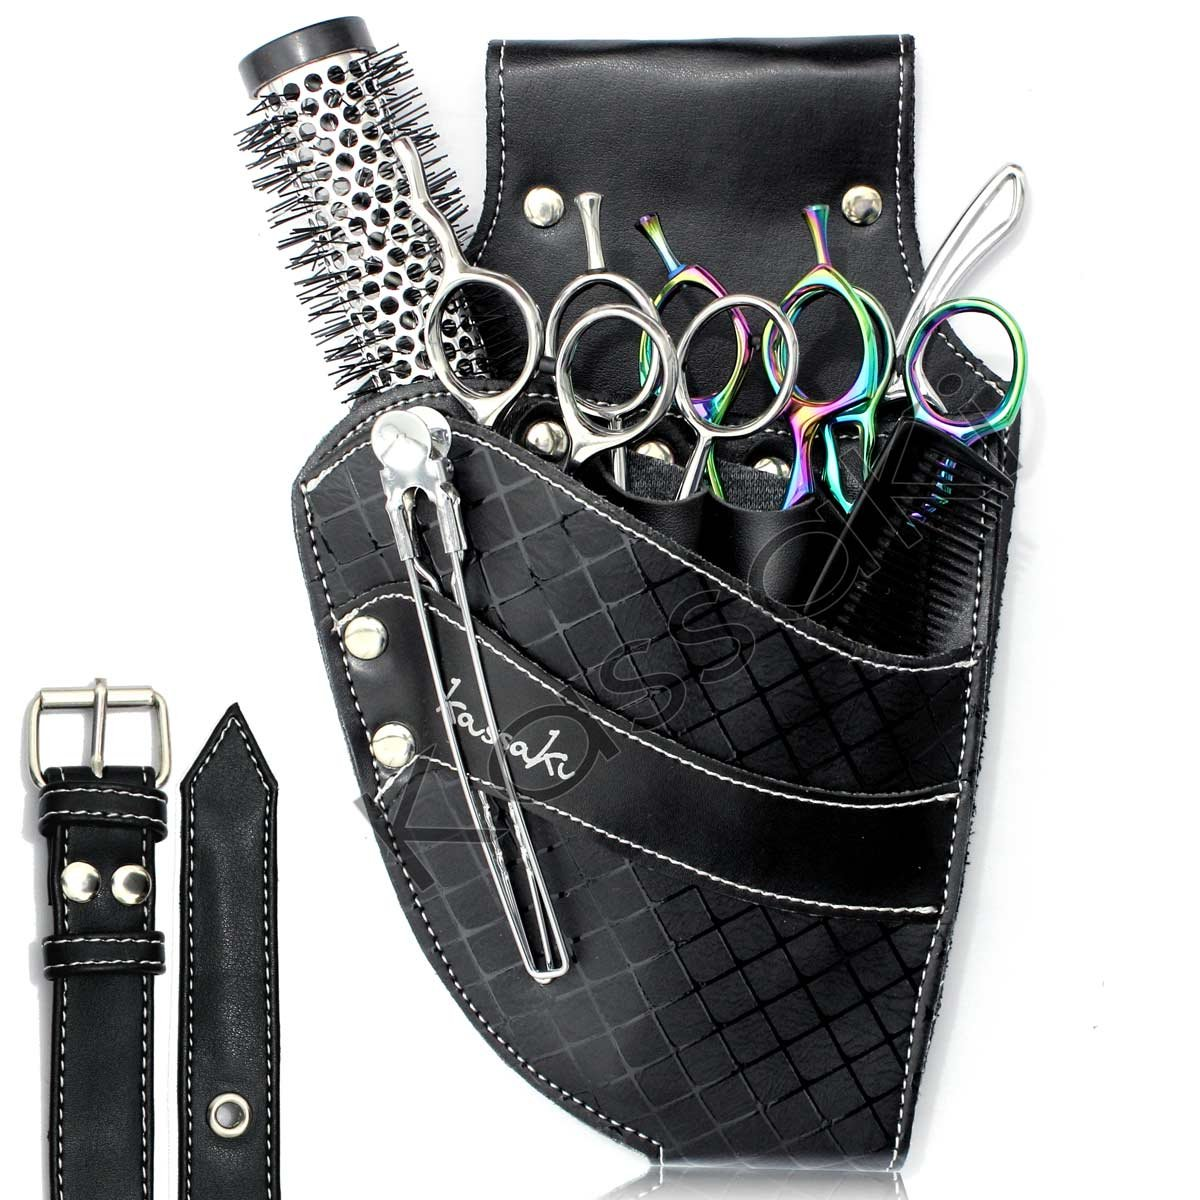 Hairdressing Scissor Pouch by Kassaki Black Diamond - Tool Belt Bag Limited Edition